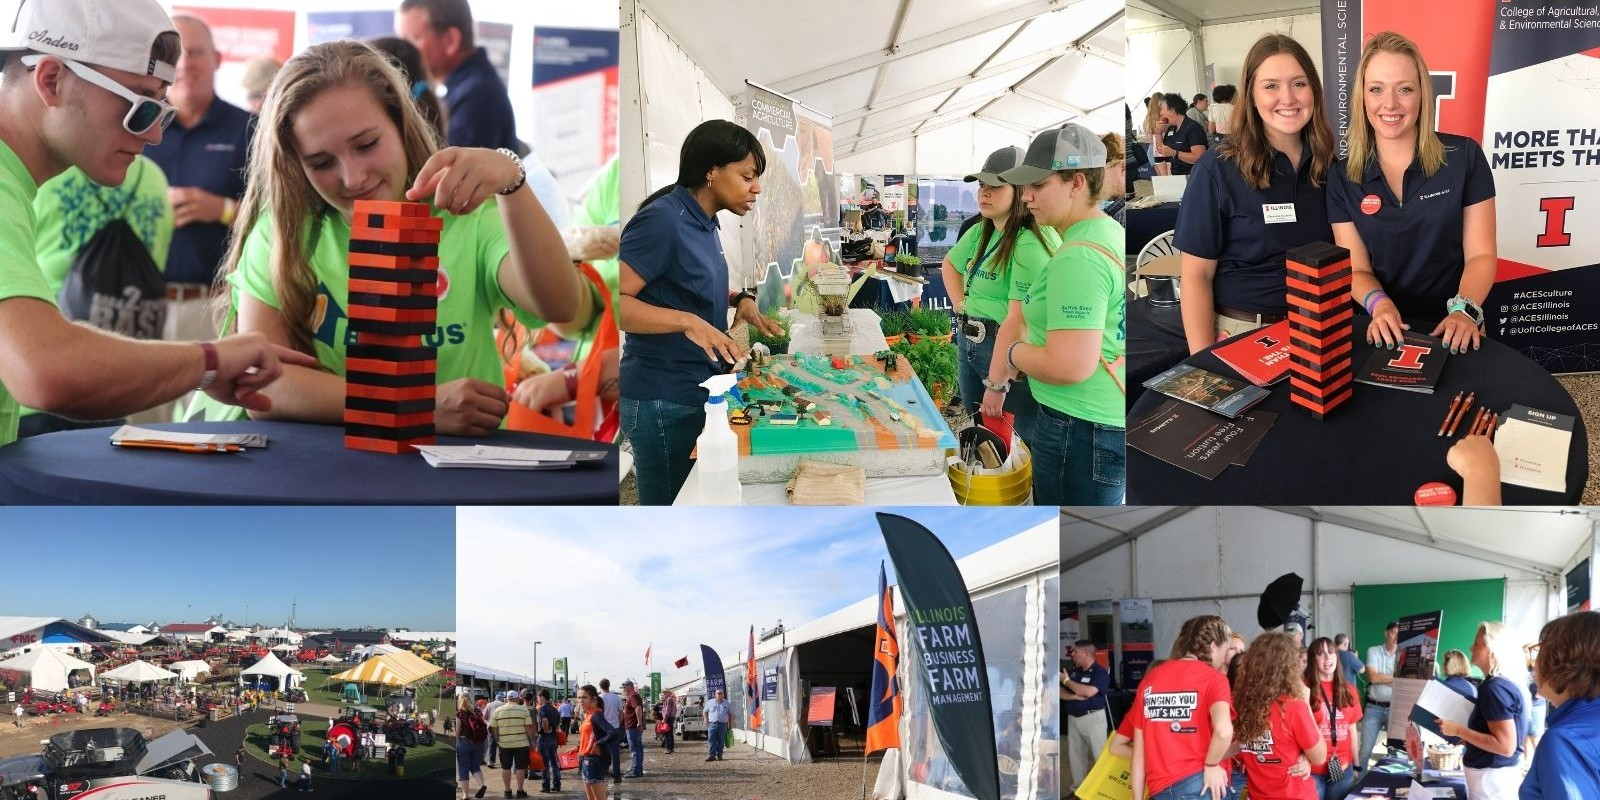 collage of activities at Farm Progress Show